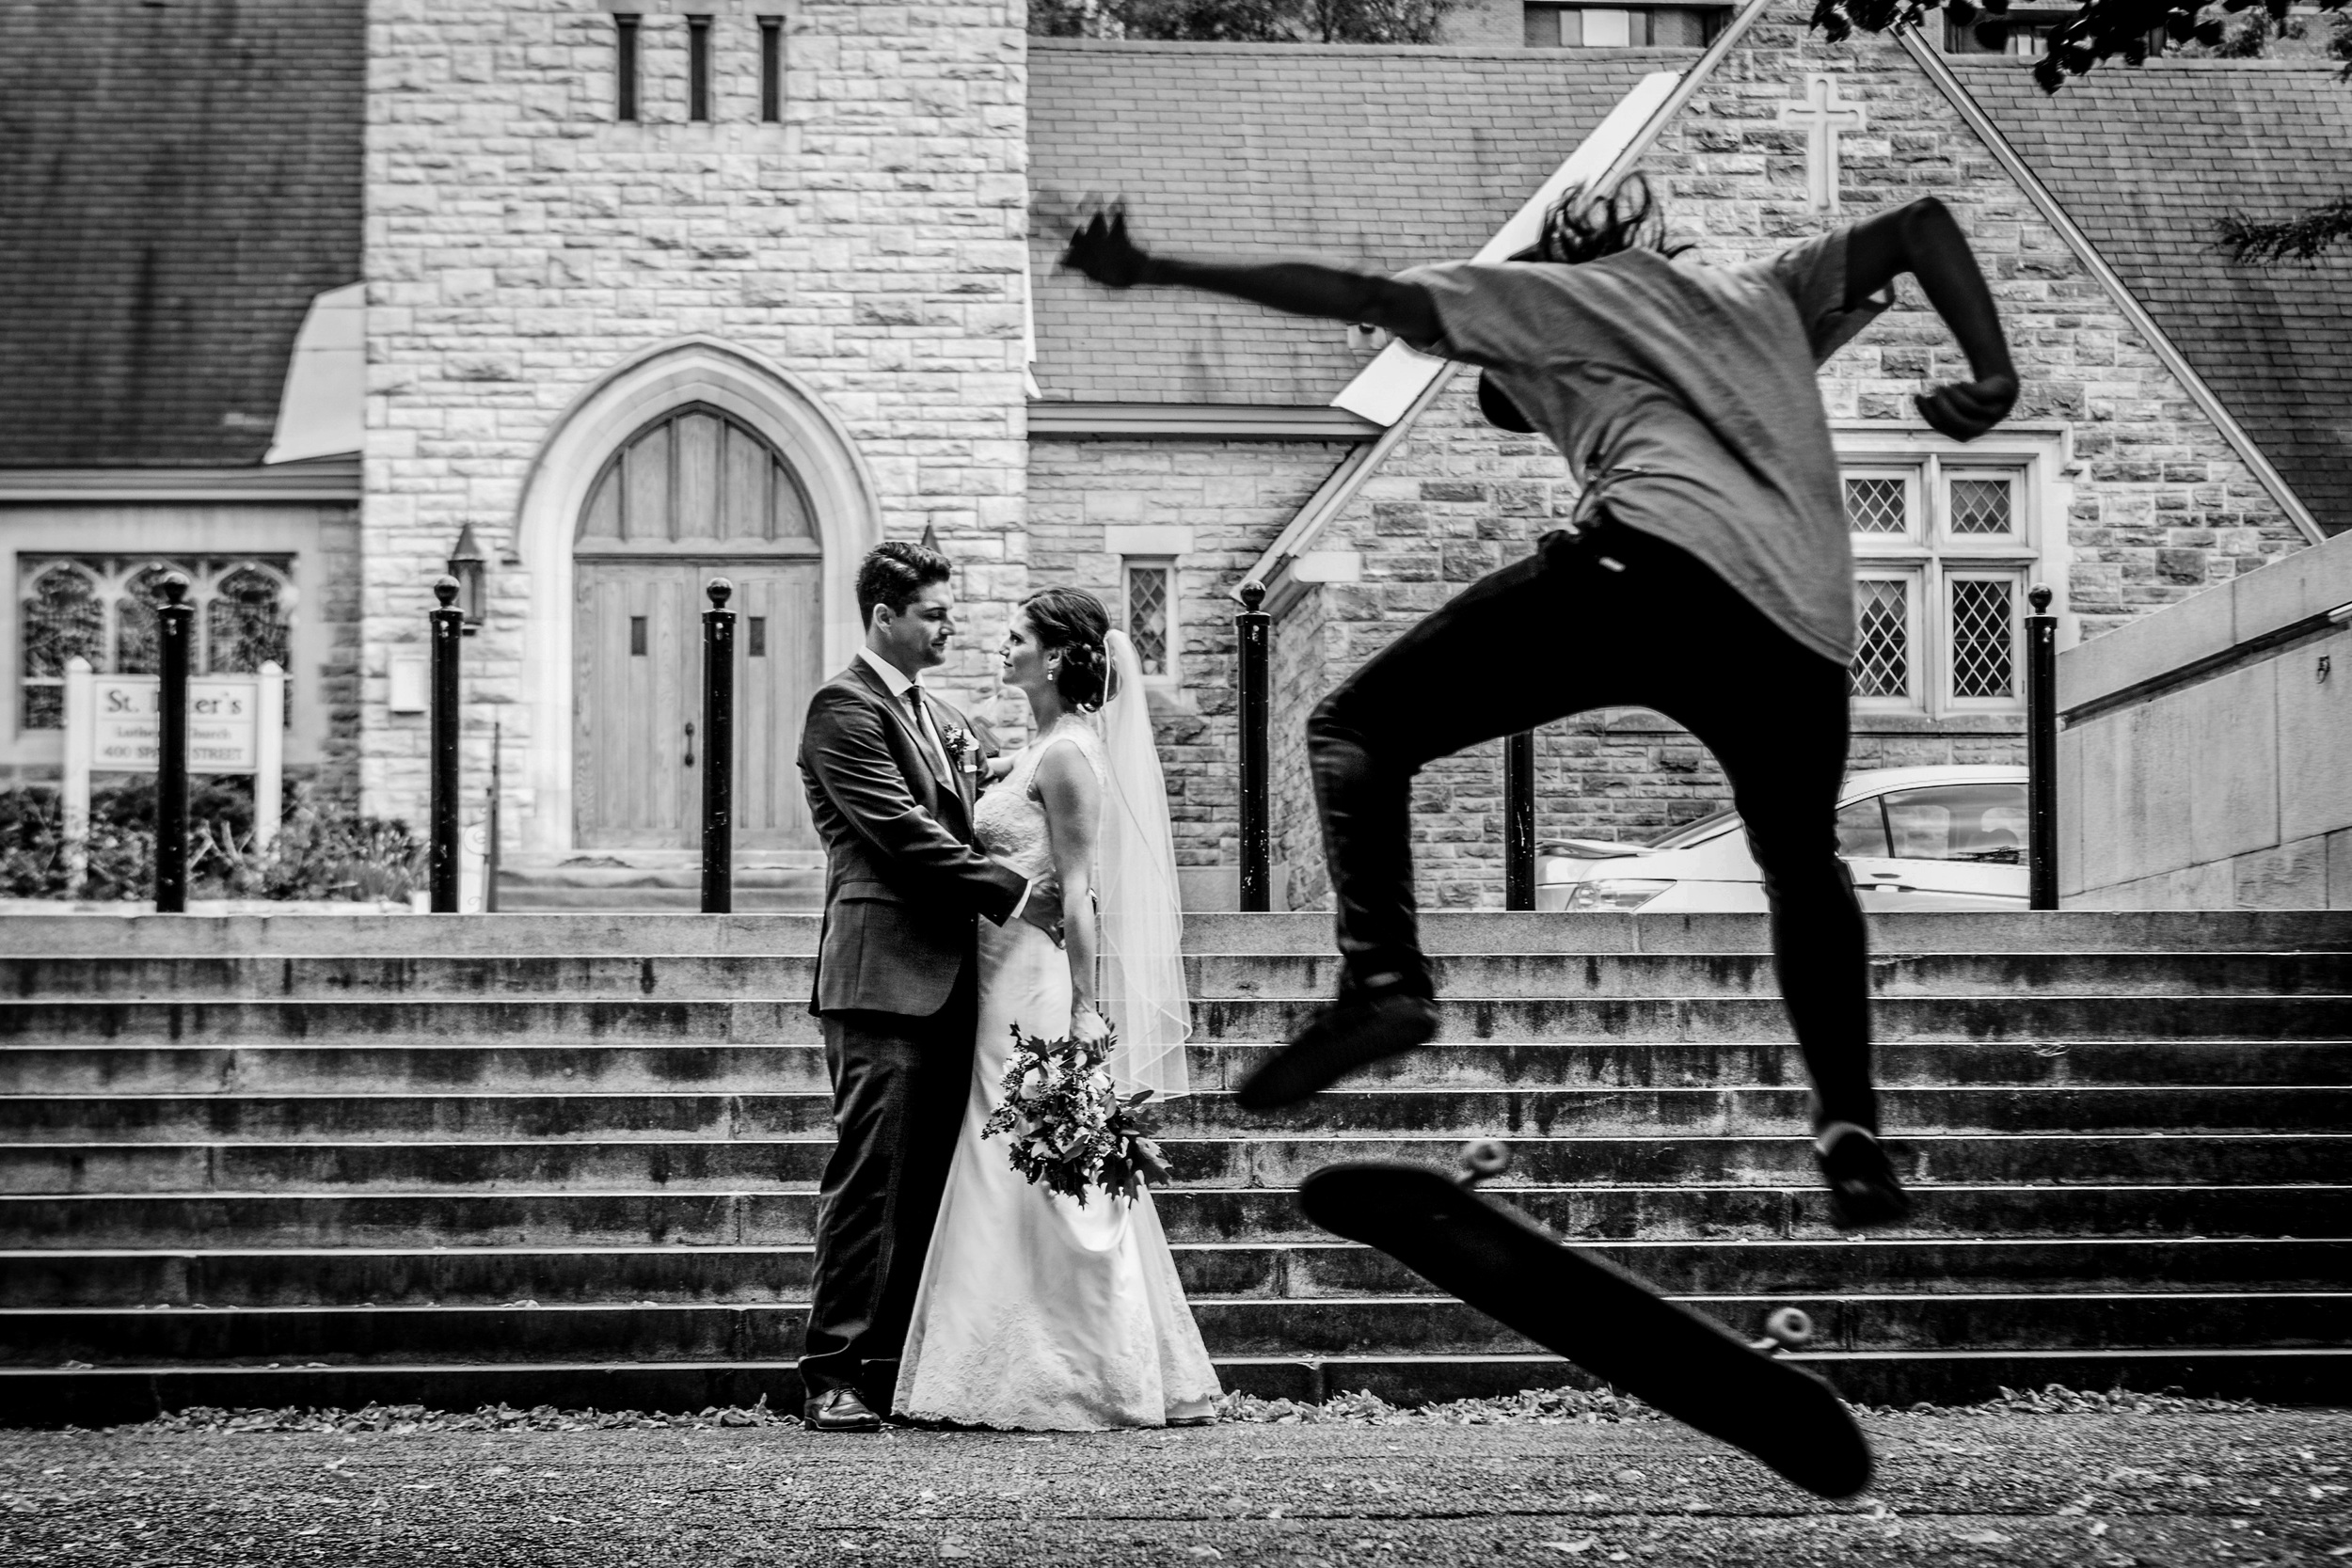 Photograph of a bride and groom with a skateboarder passing by